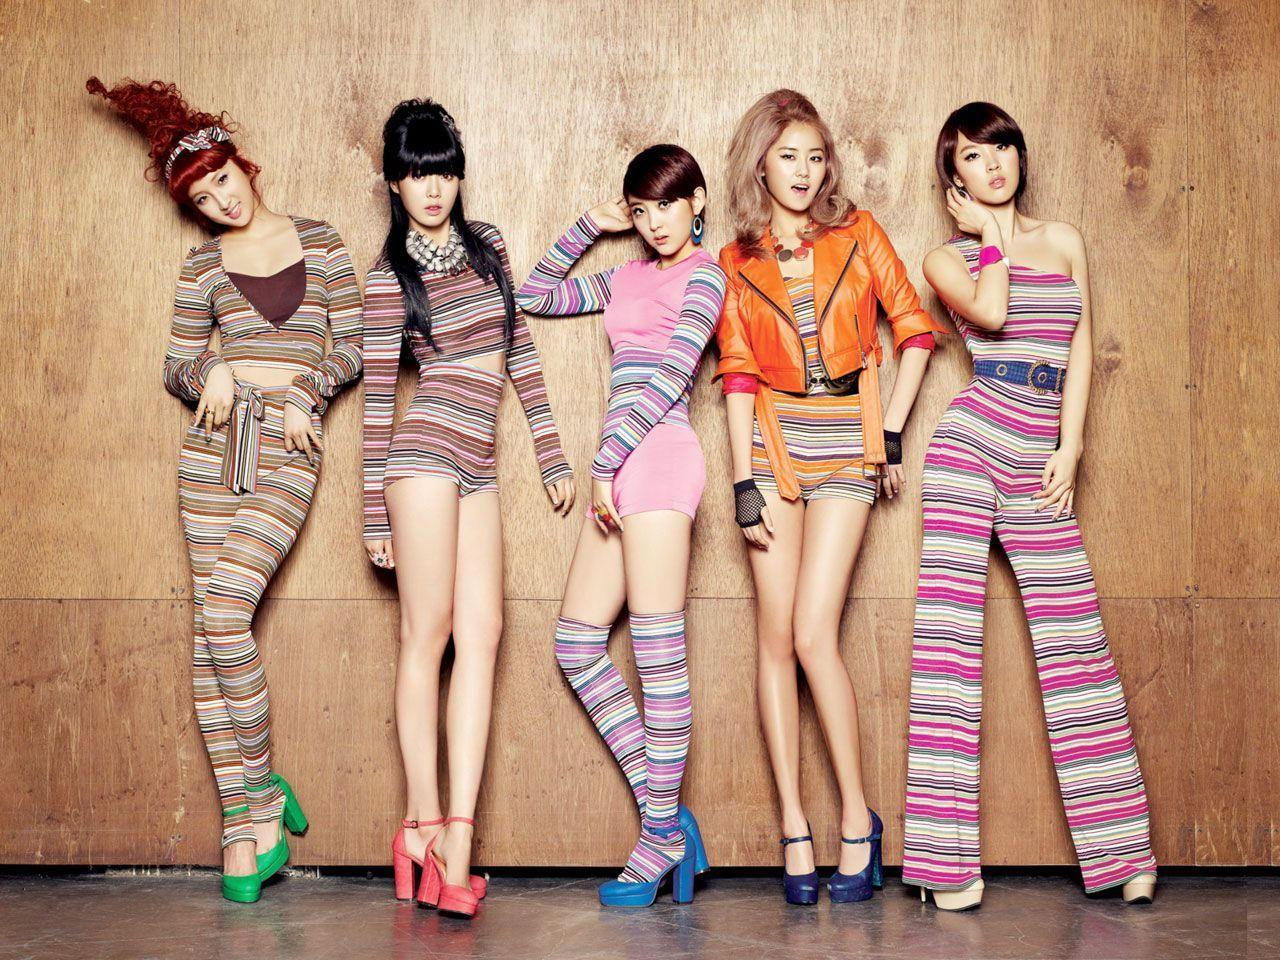 4 Minute Wallpapers 1280x960